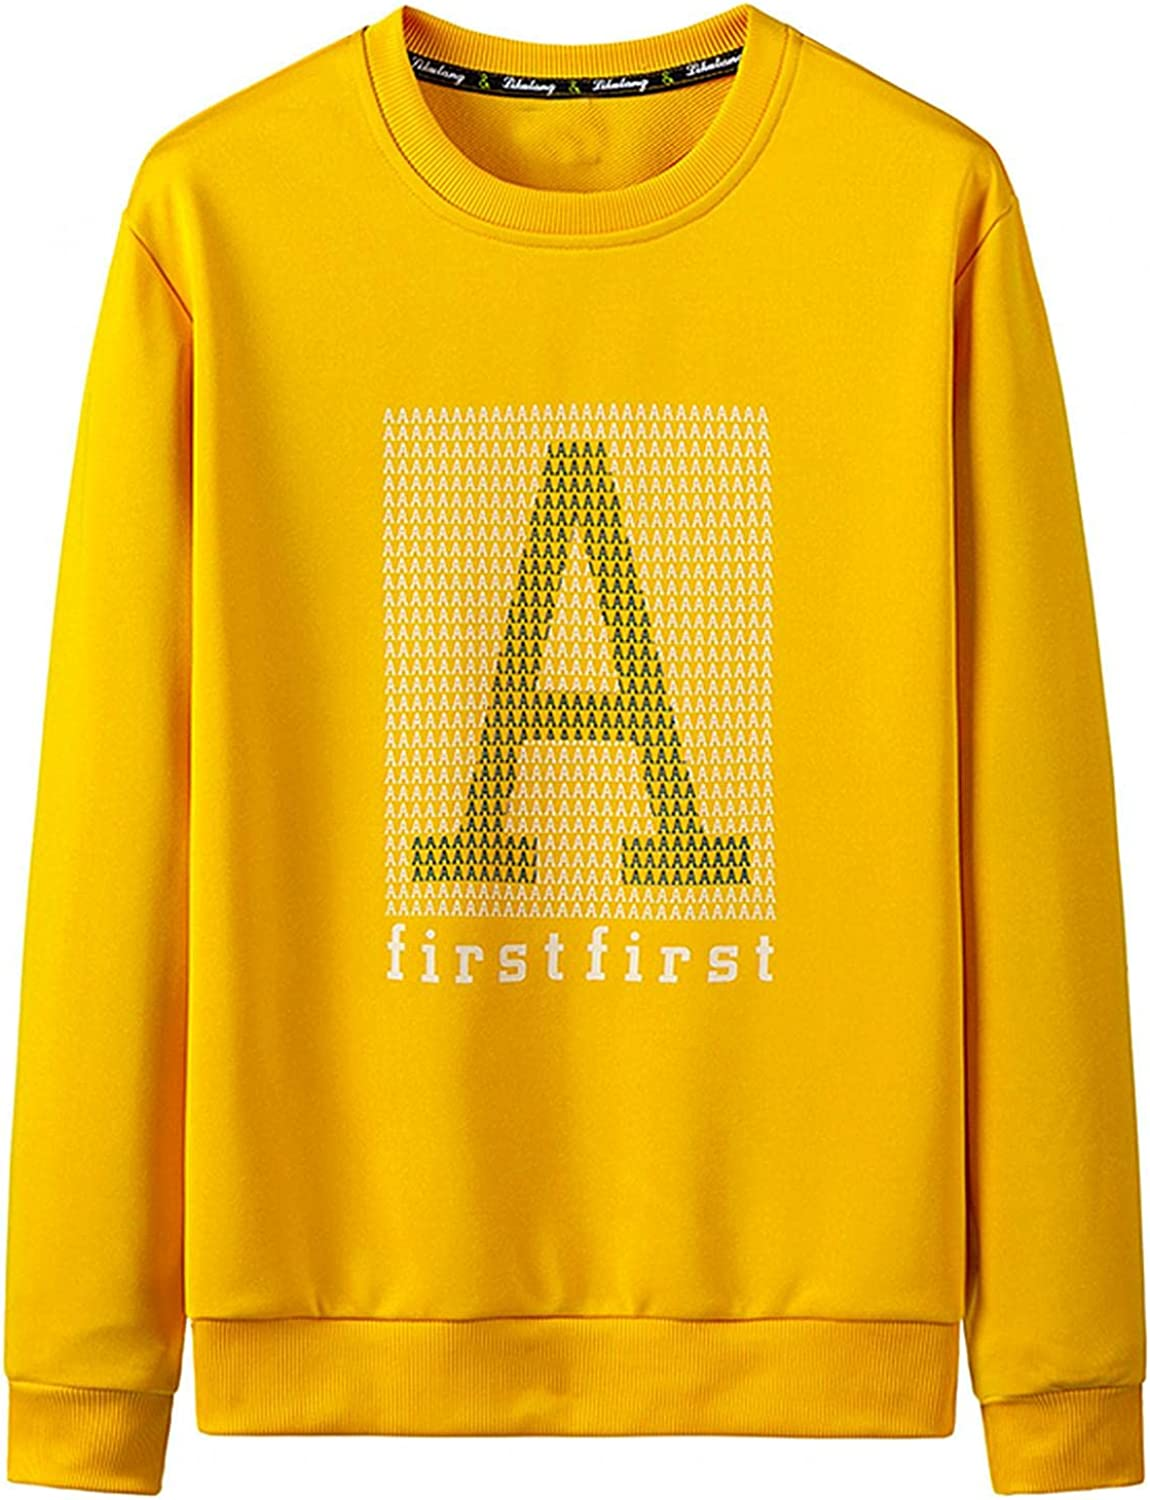 Men's Crewneck Sweatshirts Letter Print Fashion Casual Soft Sport Pullover Athletic Workout Gym Running Lightweight Tops